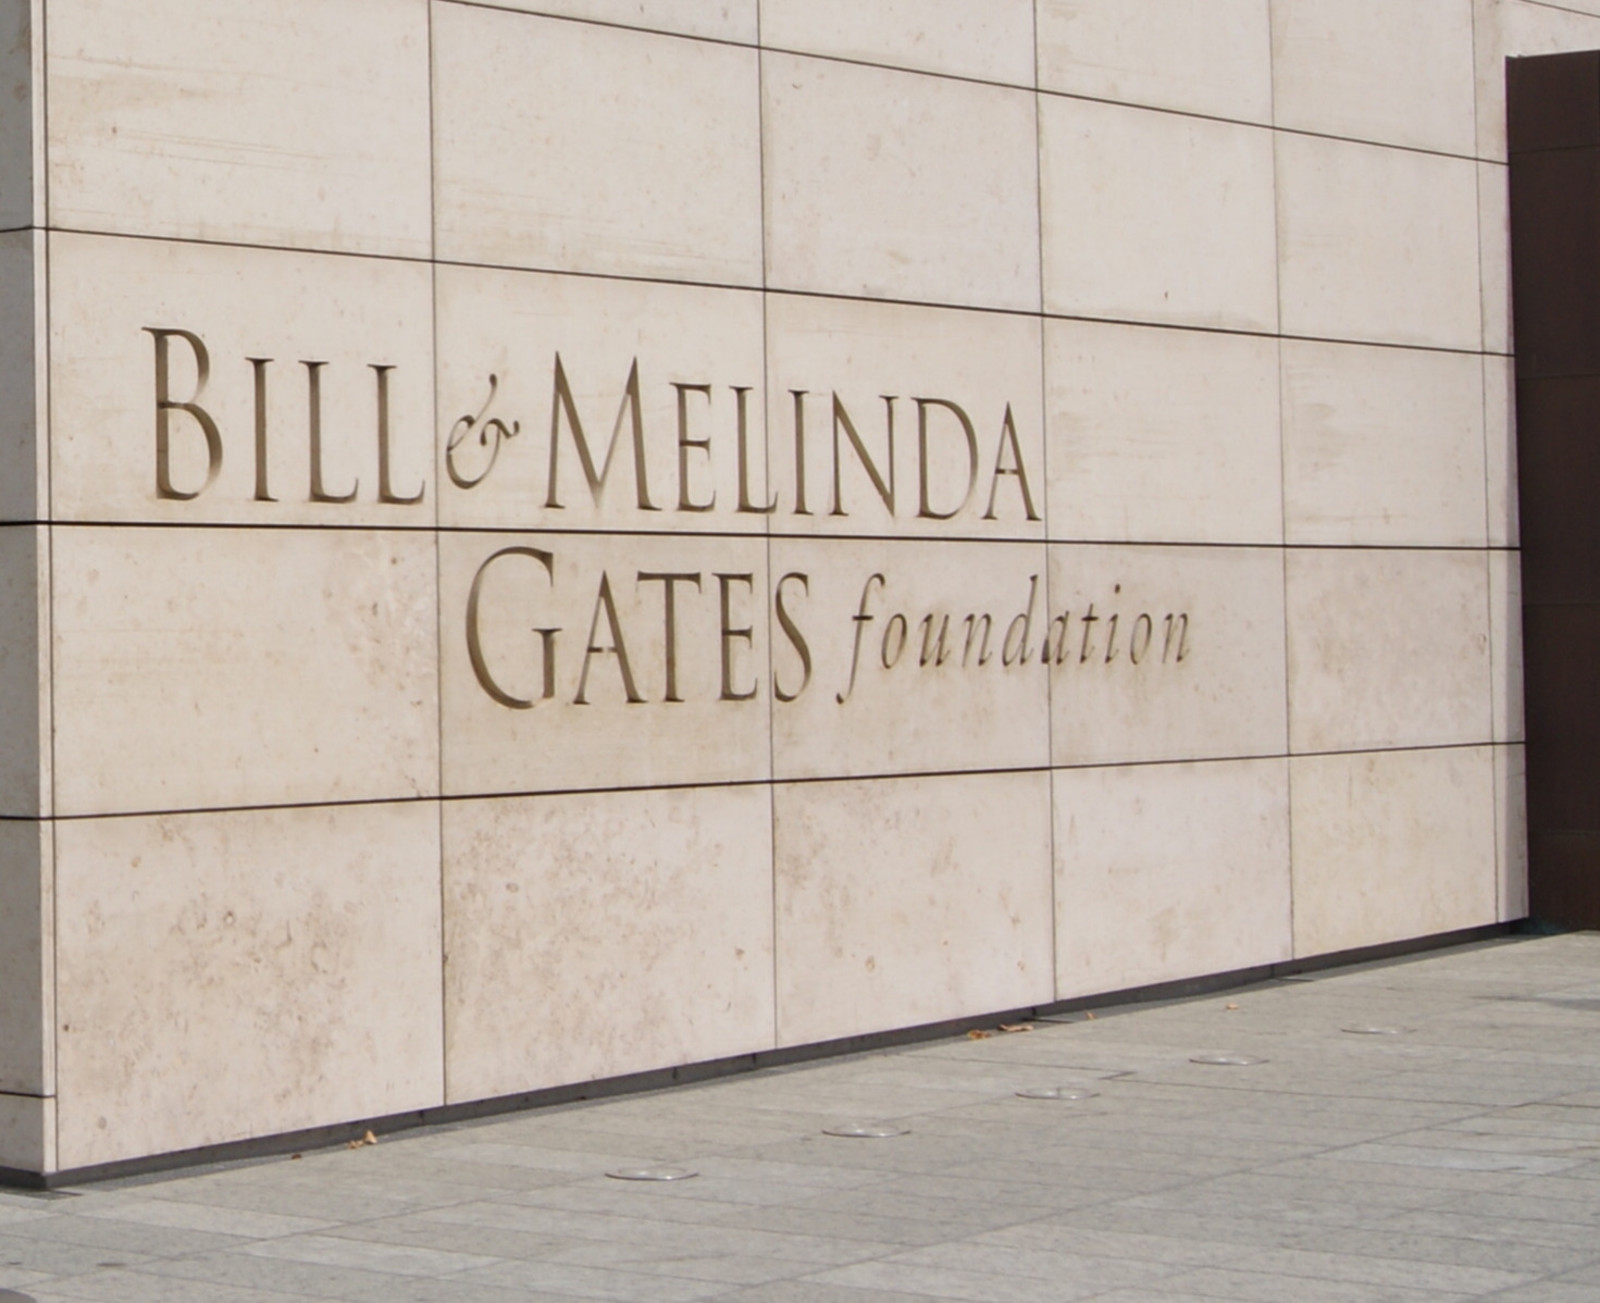 Bill   melinda gates foundation visitor center  seattle  washington  usa   20150811 27